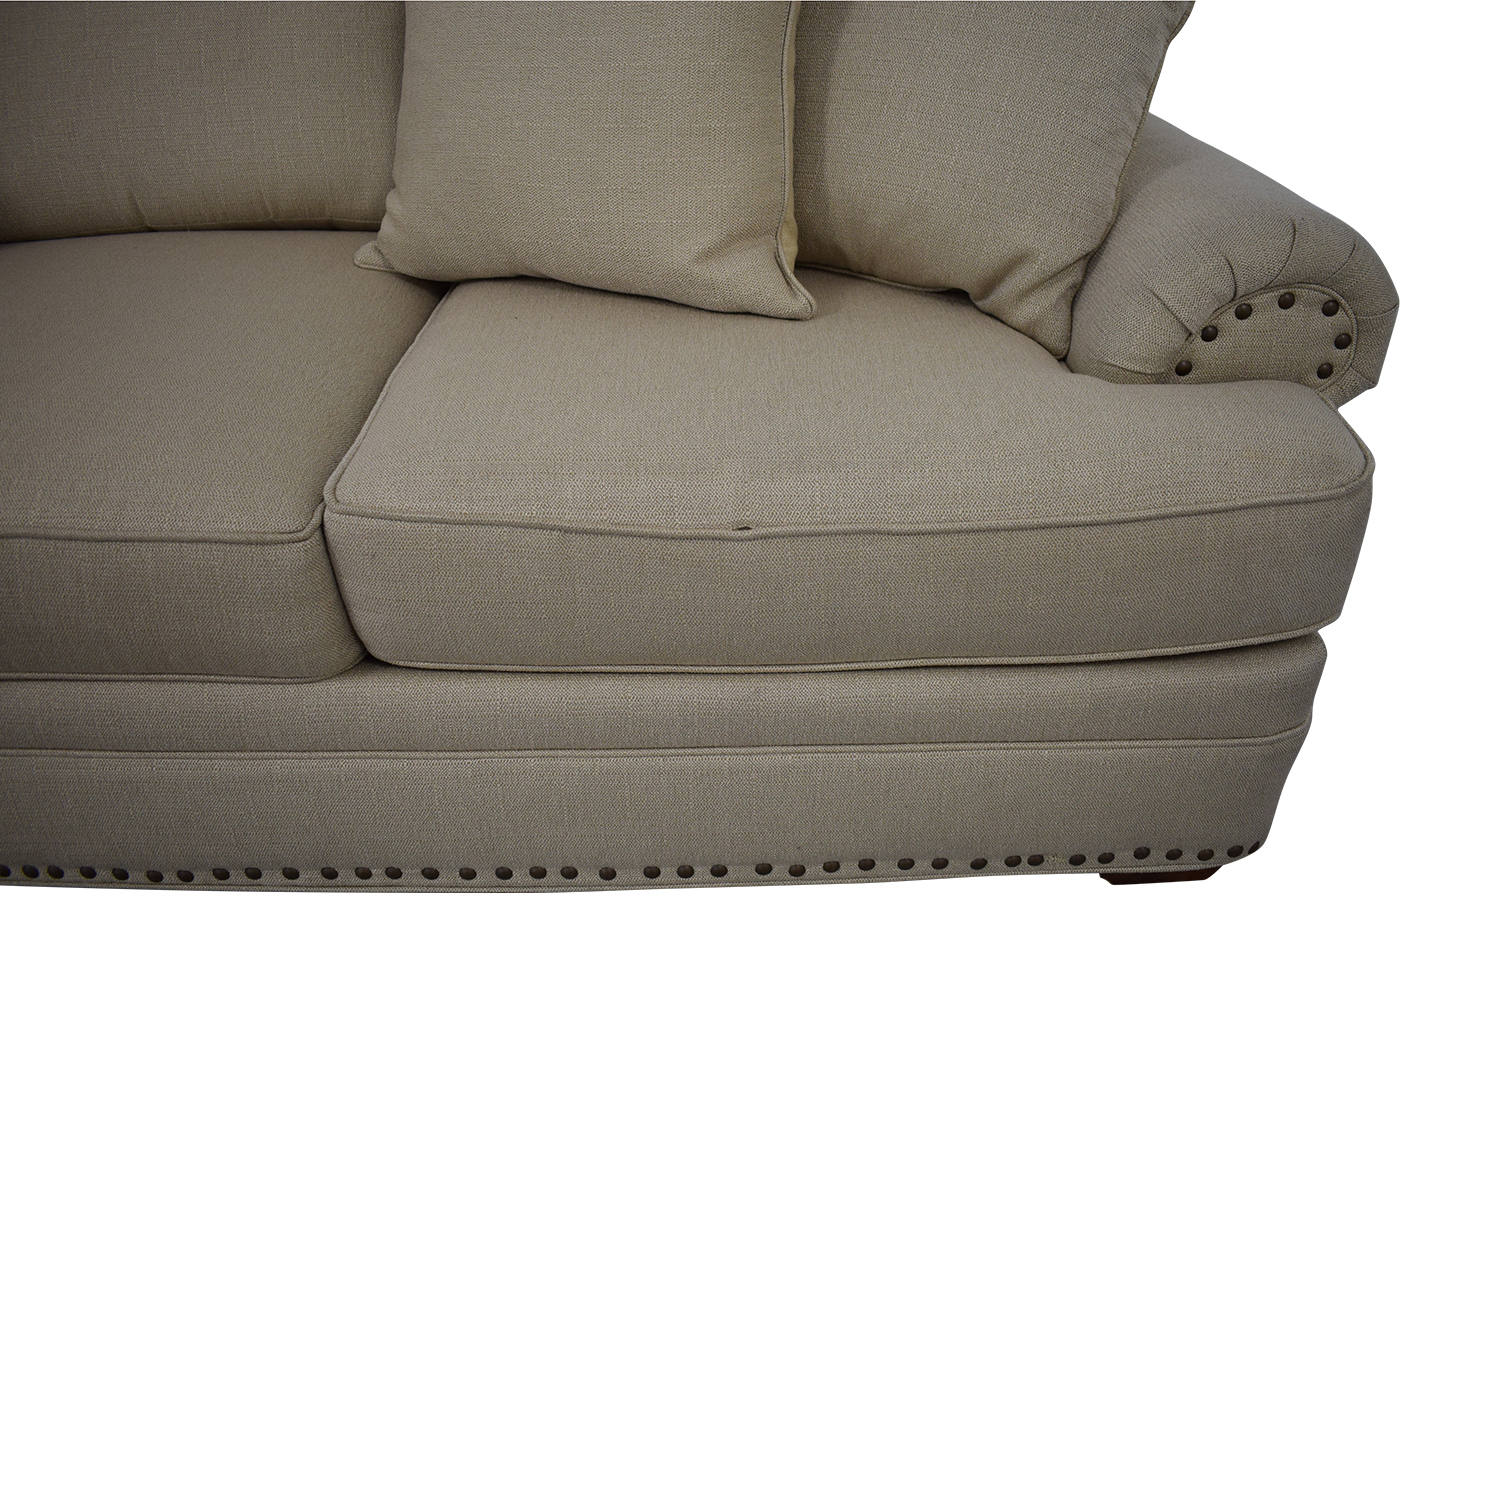 Havertys Havertys Three Cushion Fabric Roll Arm Sofa coupon